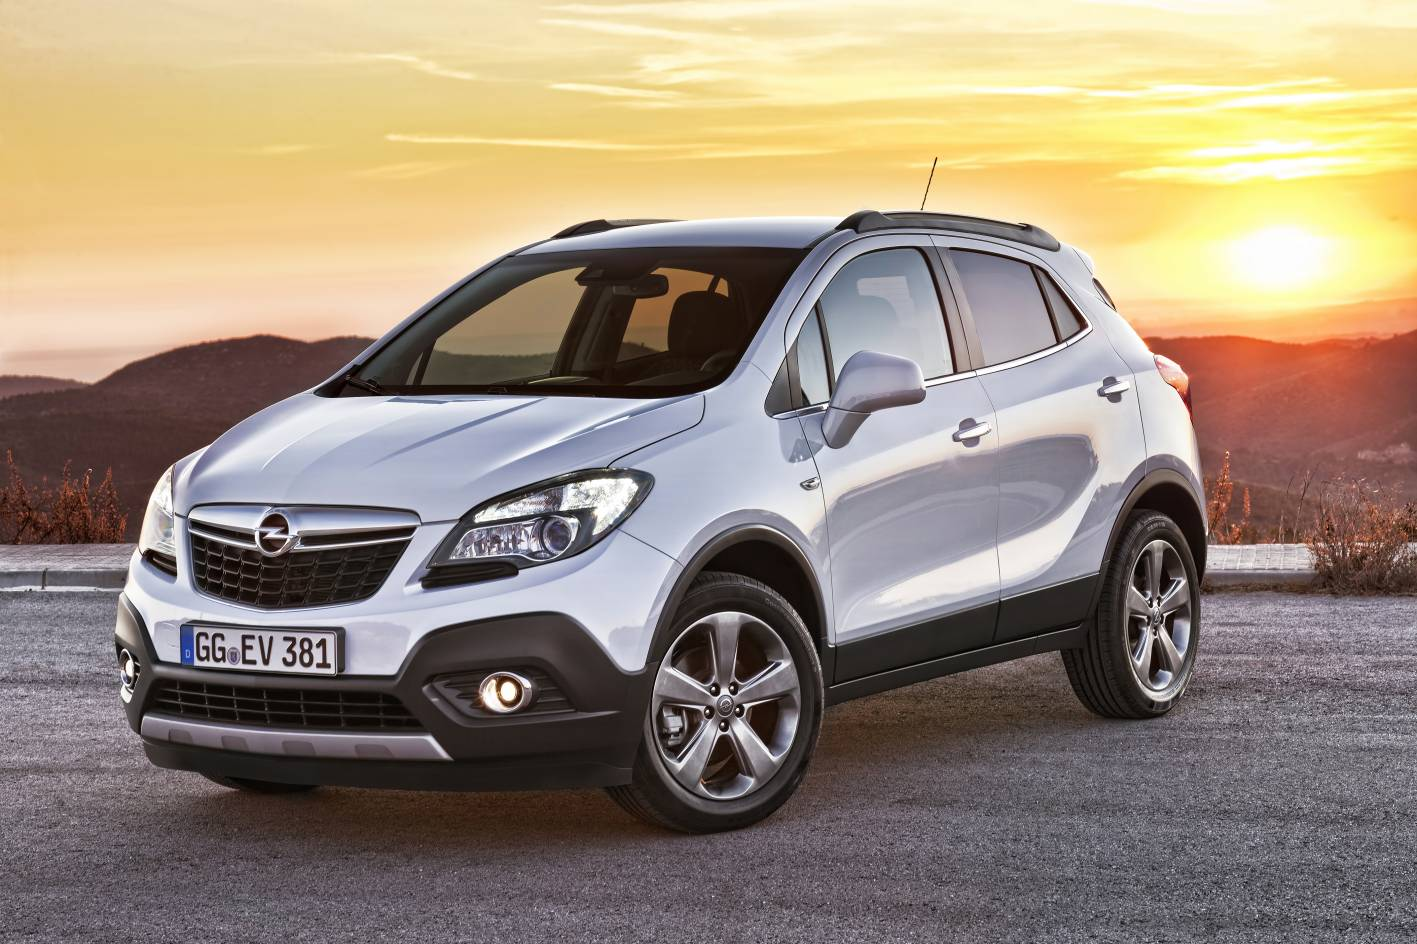 news opel confirms mokka suv for local sale. Black Bedroom Furniture Sets. Home Design Ideas